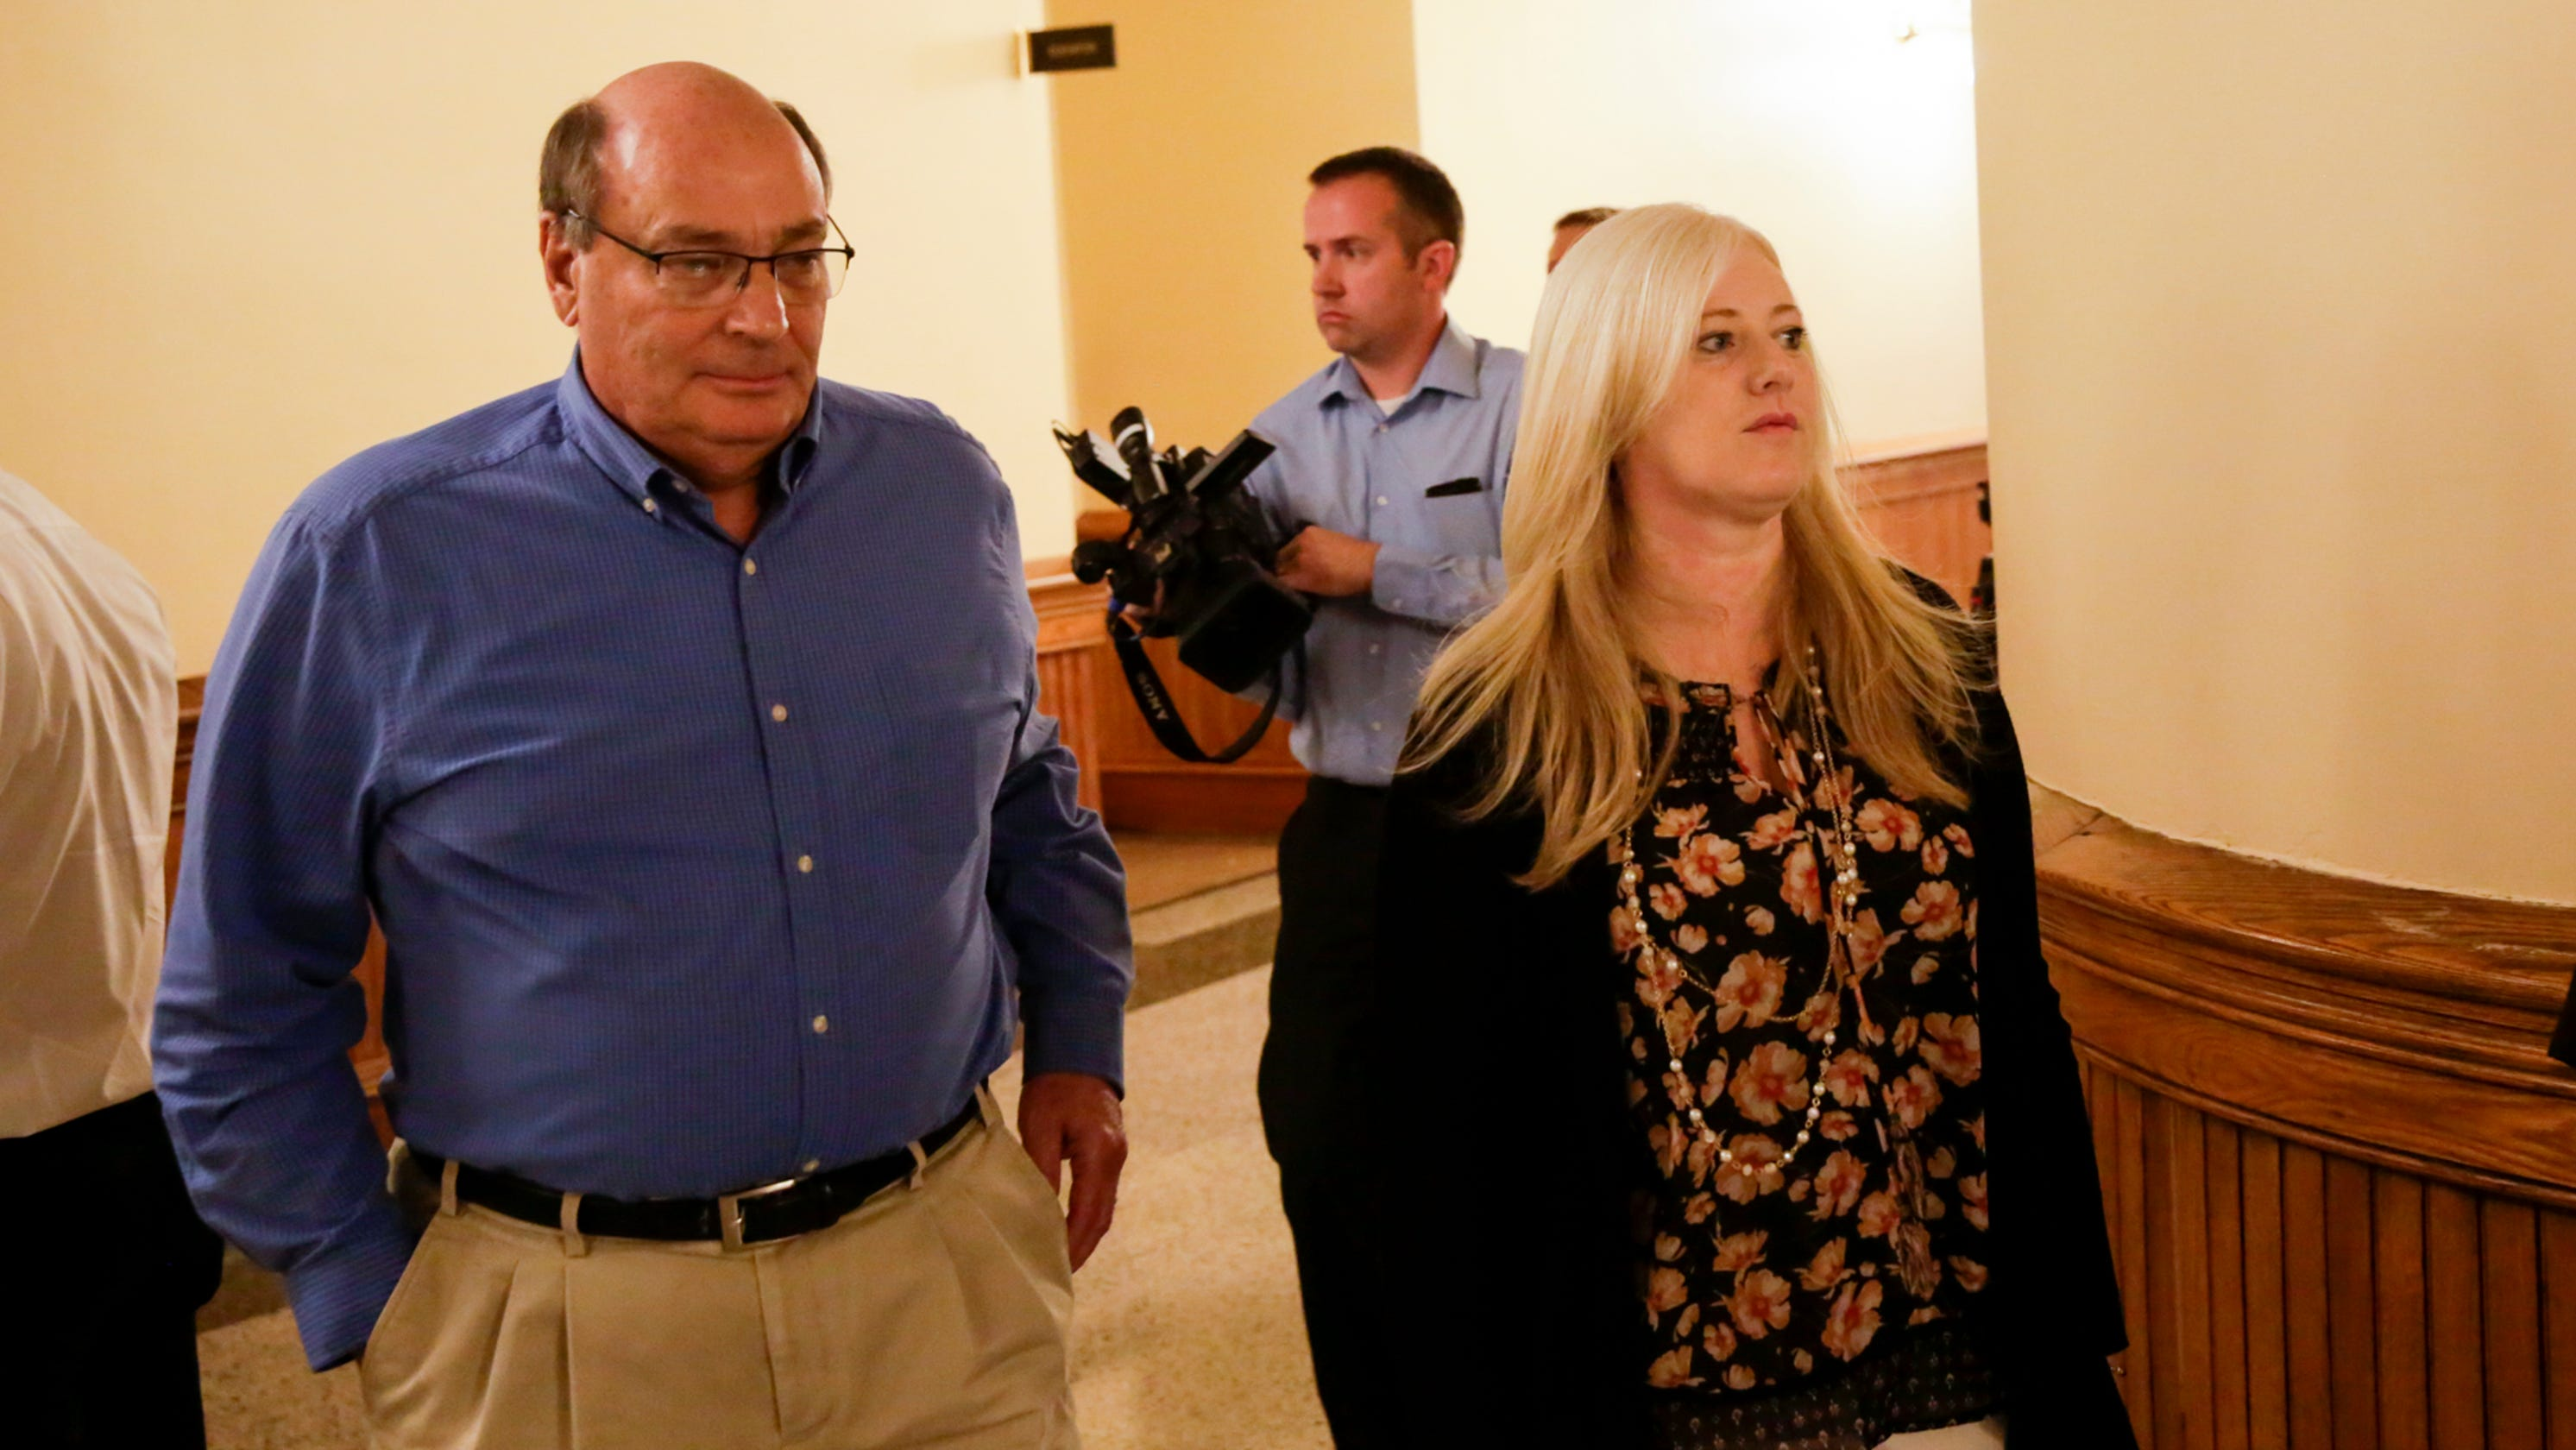 Parents accused of abandoning daughter, changing her age, plead not guilty